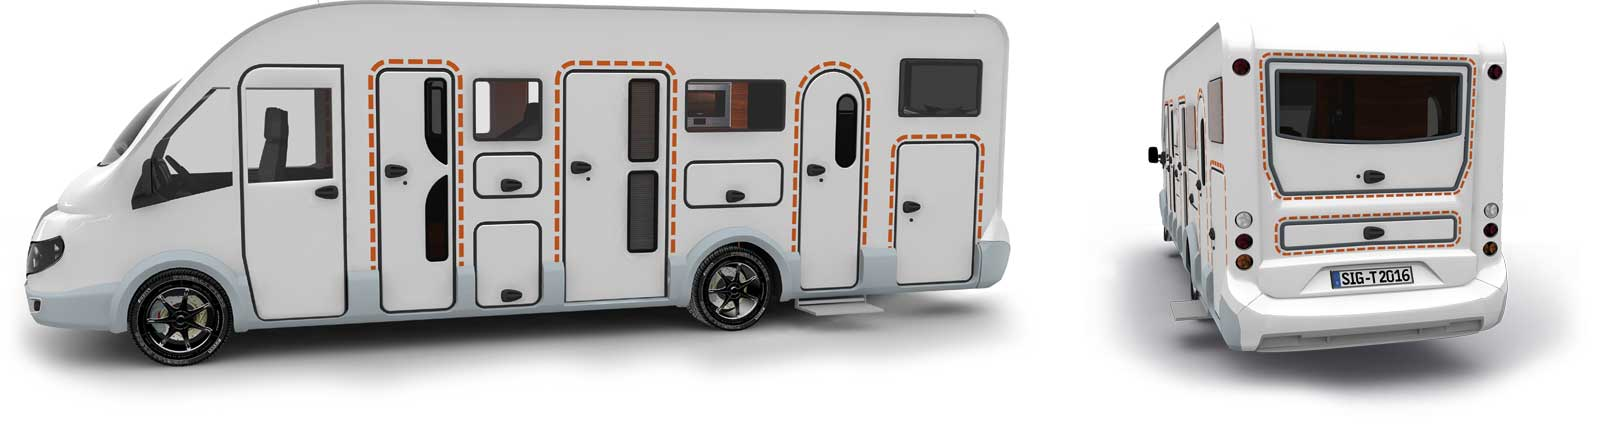 Satisfied tegos customers with XGO caravans and RVs